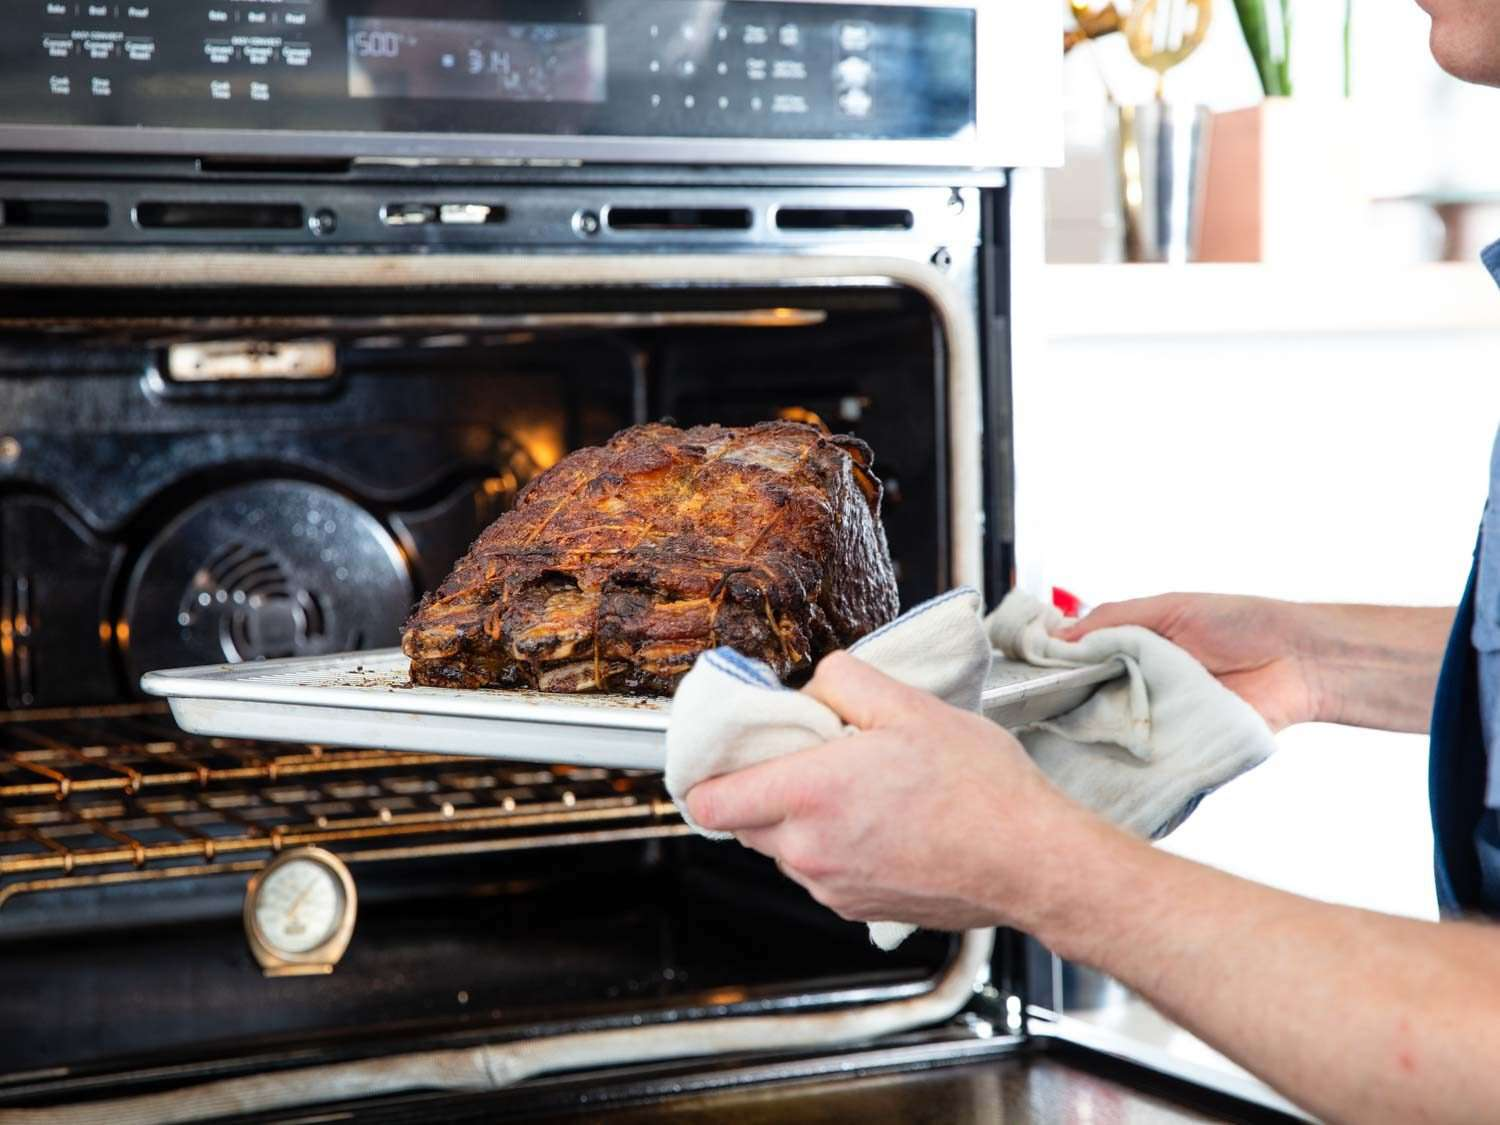 A prime rib roast getting pulled out of the oven using a kitchen towel to hold the tray